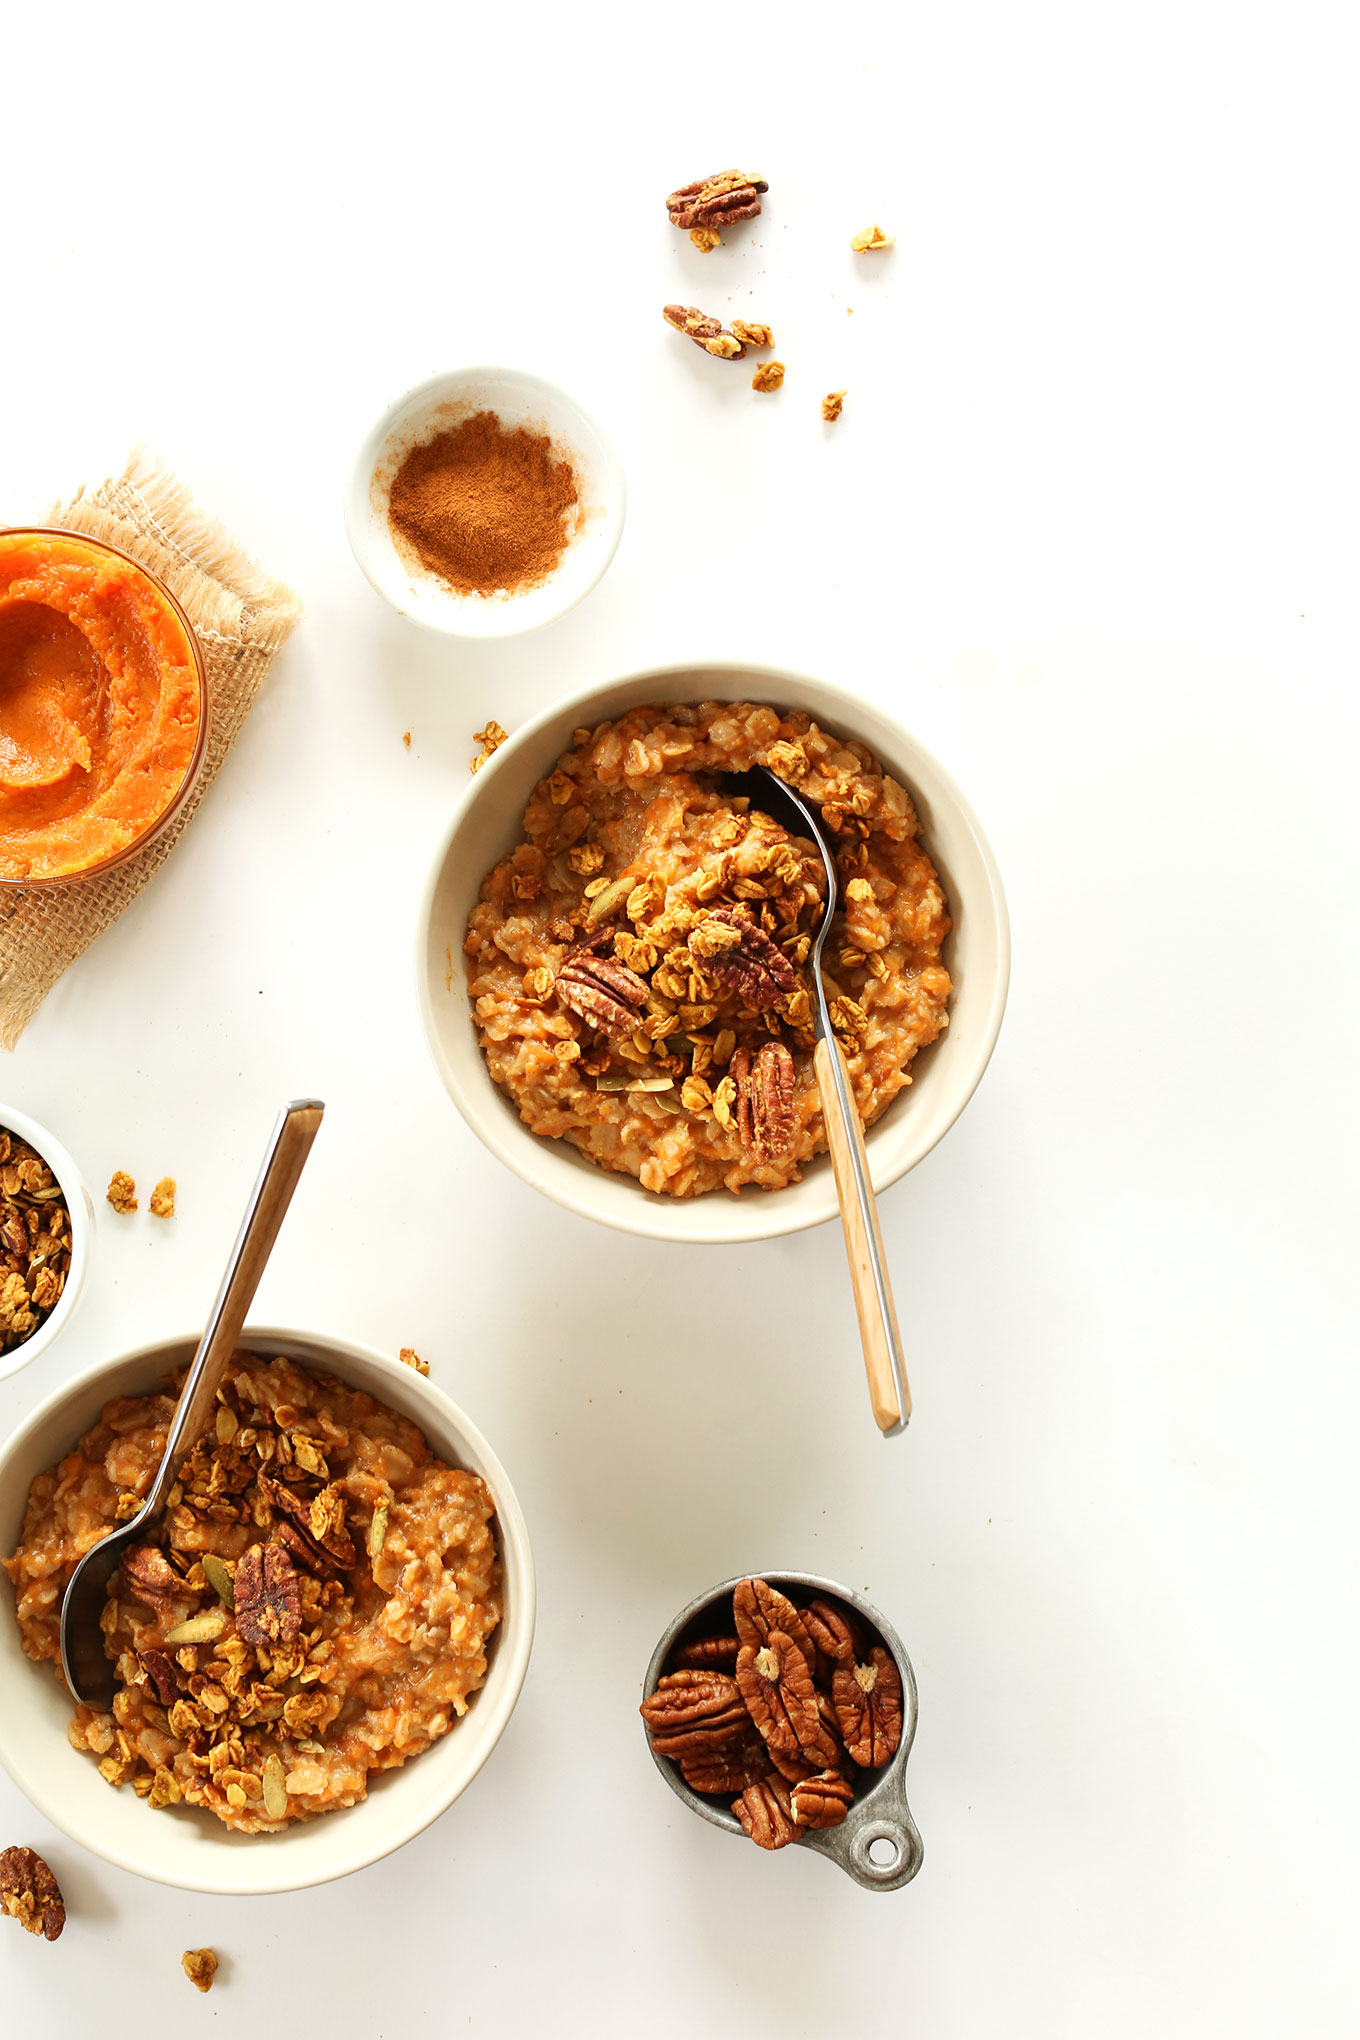 Bowls of our healthy Sweet Potato Pie Oats topped with pecans